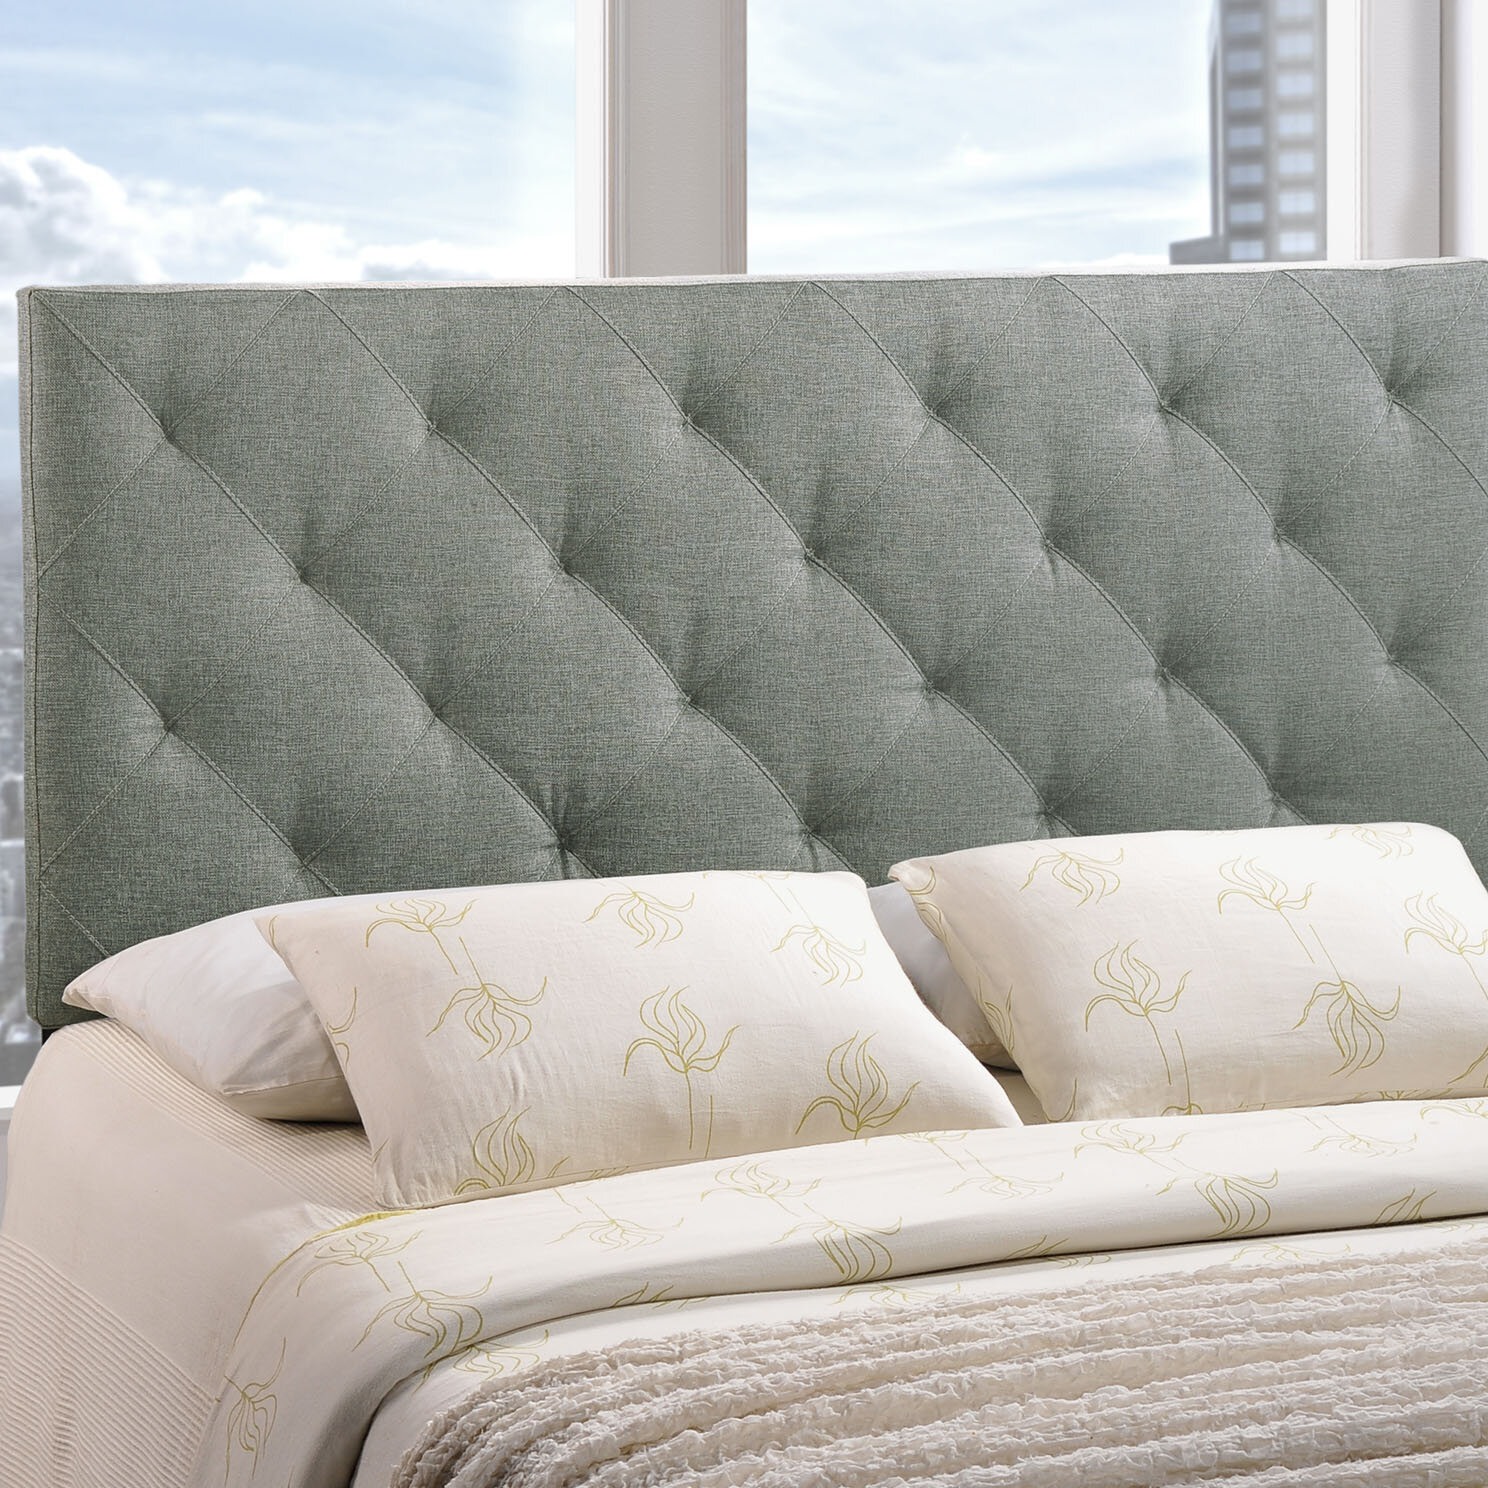 with ideas out designs your in the frame that beauty quilted headboards a bring padded tufted bed how queen fabric bedroom diy headboard king to decorate